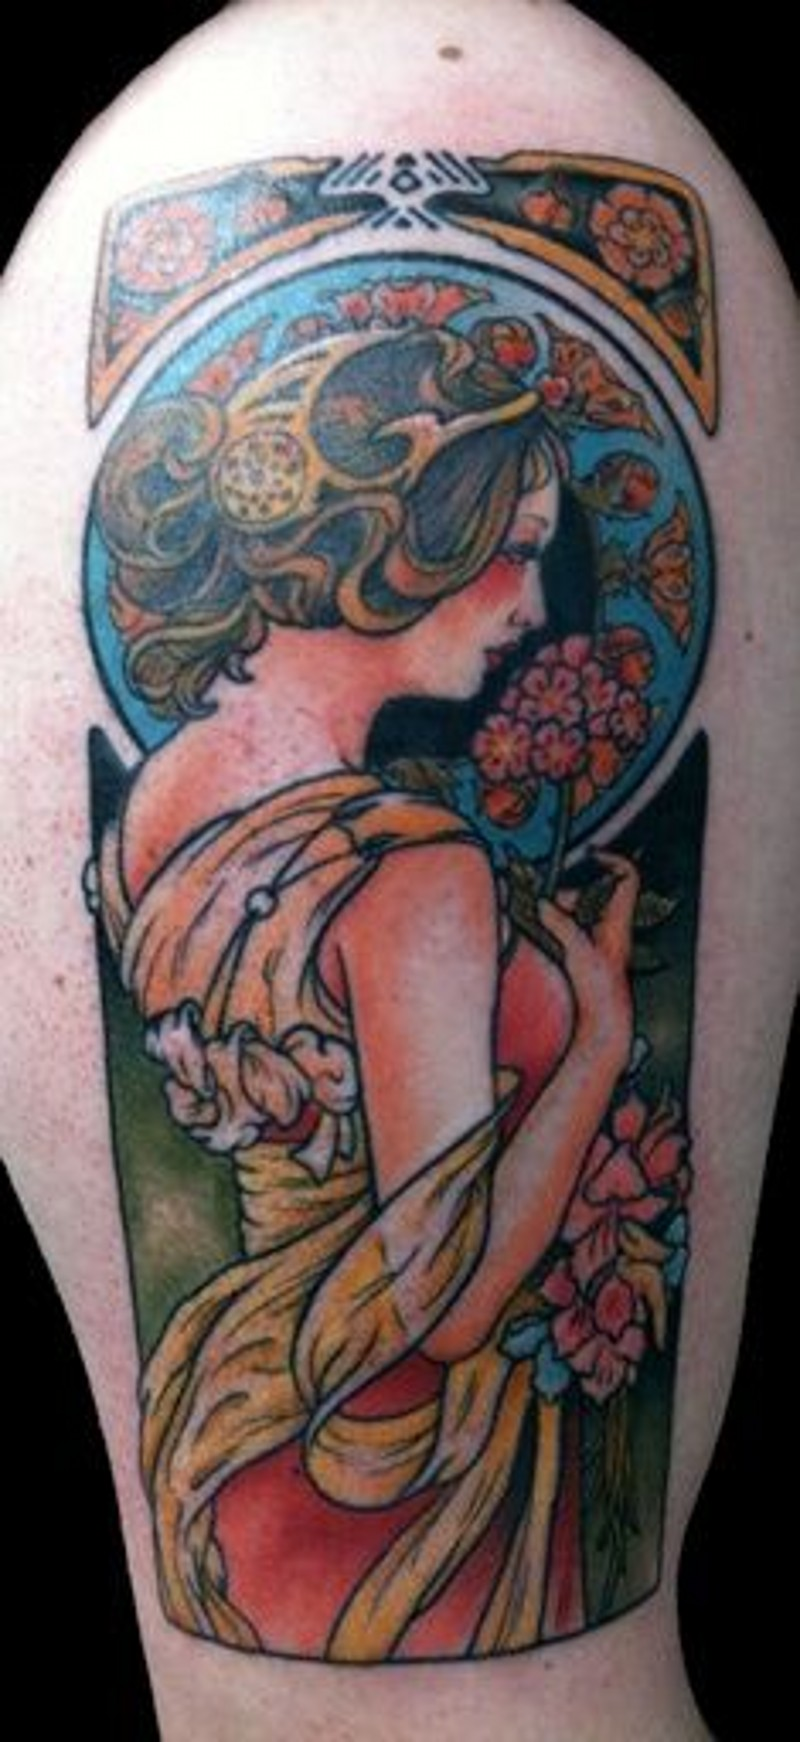 Vintage painting like colored shoulder tattoo fo woman with flowers